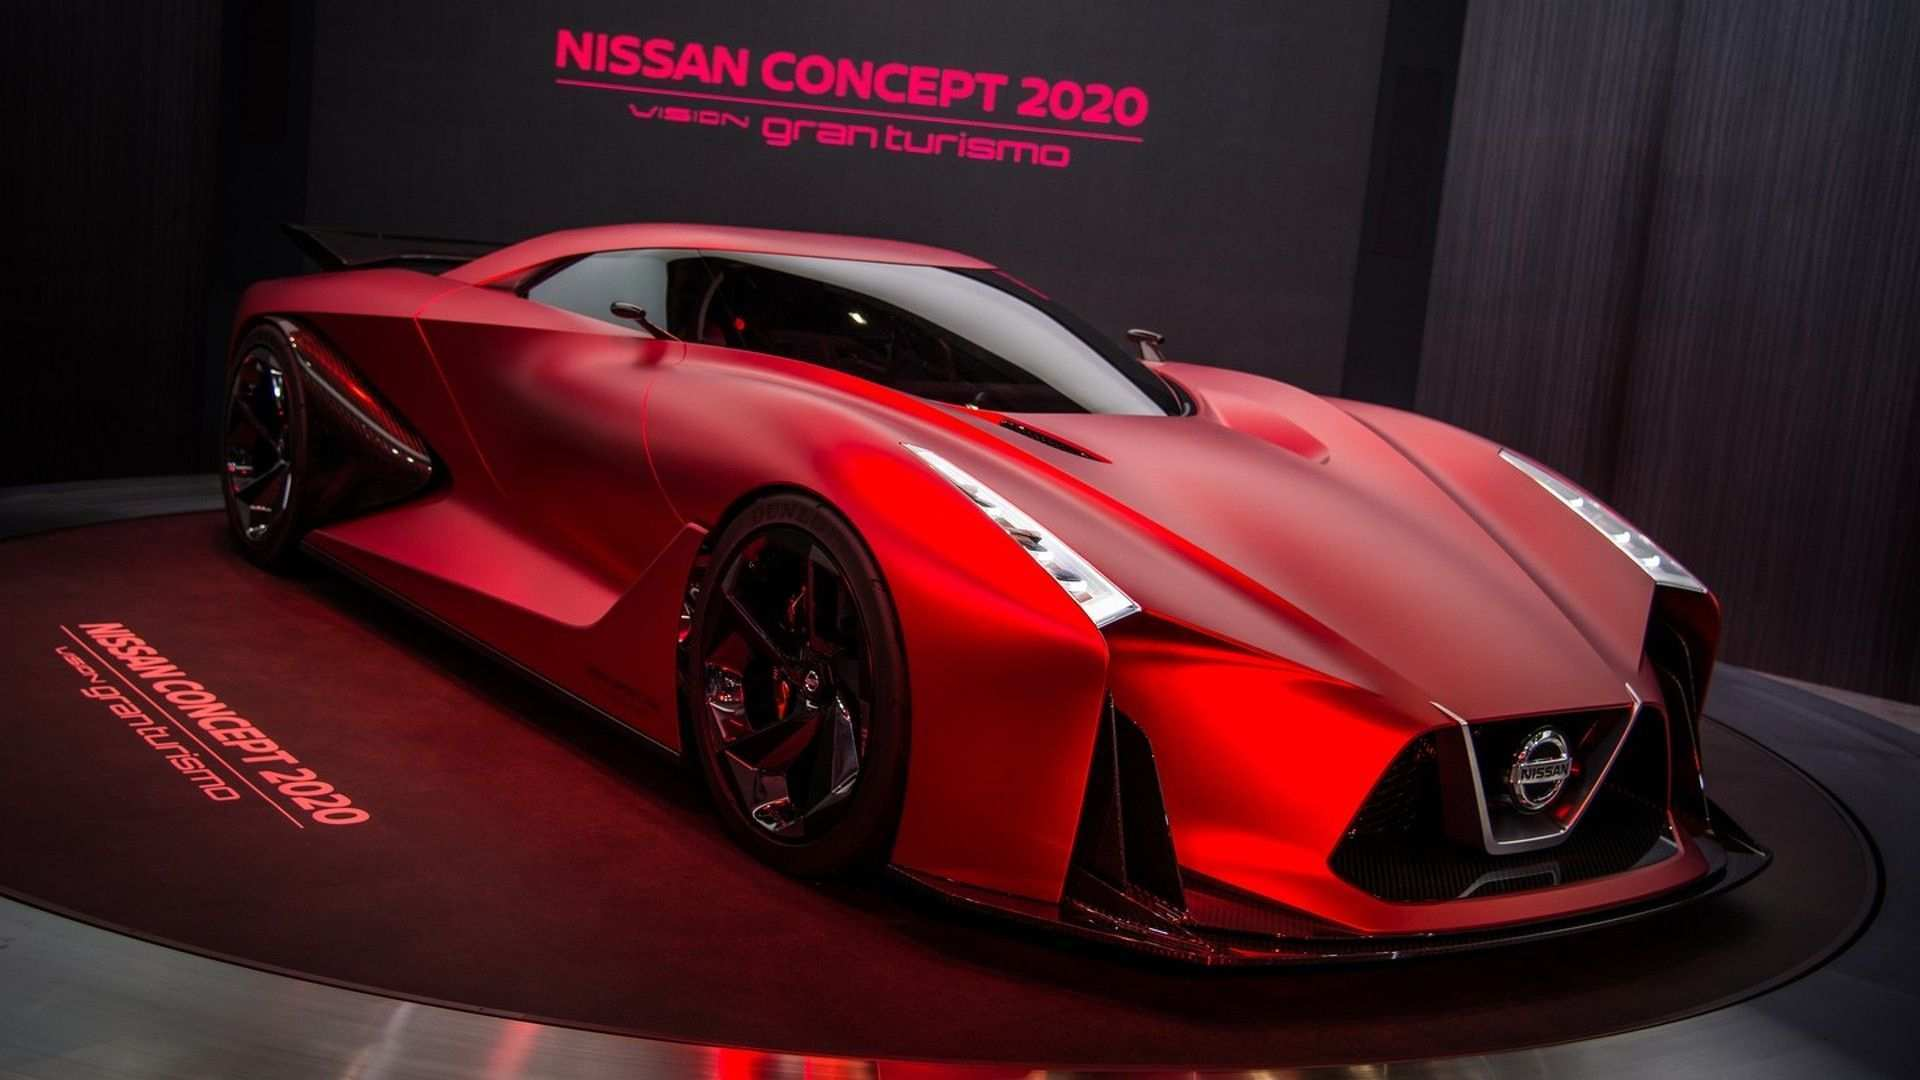 66 Great Nissan Gtr 2020 Exterior Overview with Nissan Gtr 2020 Exterior